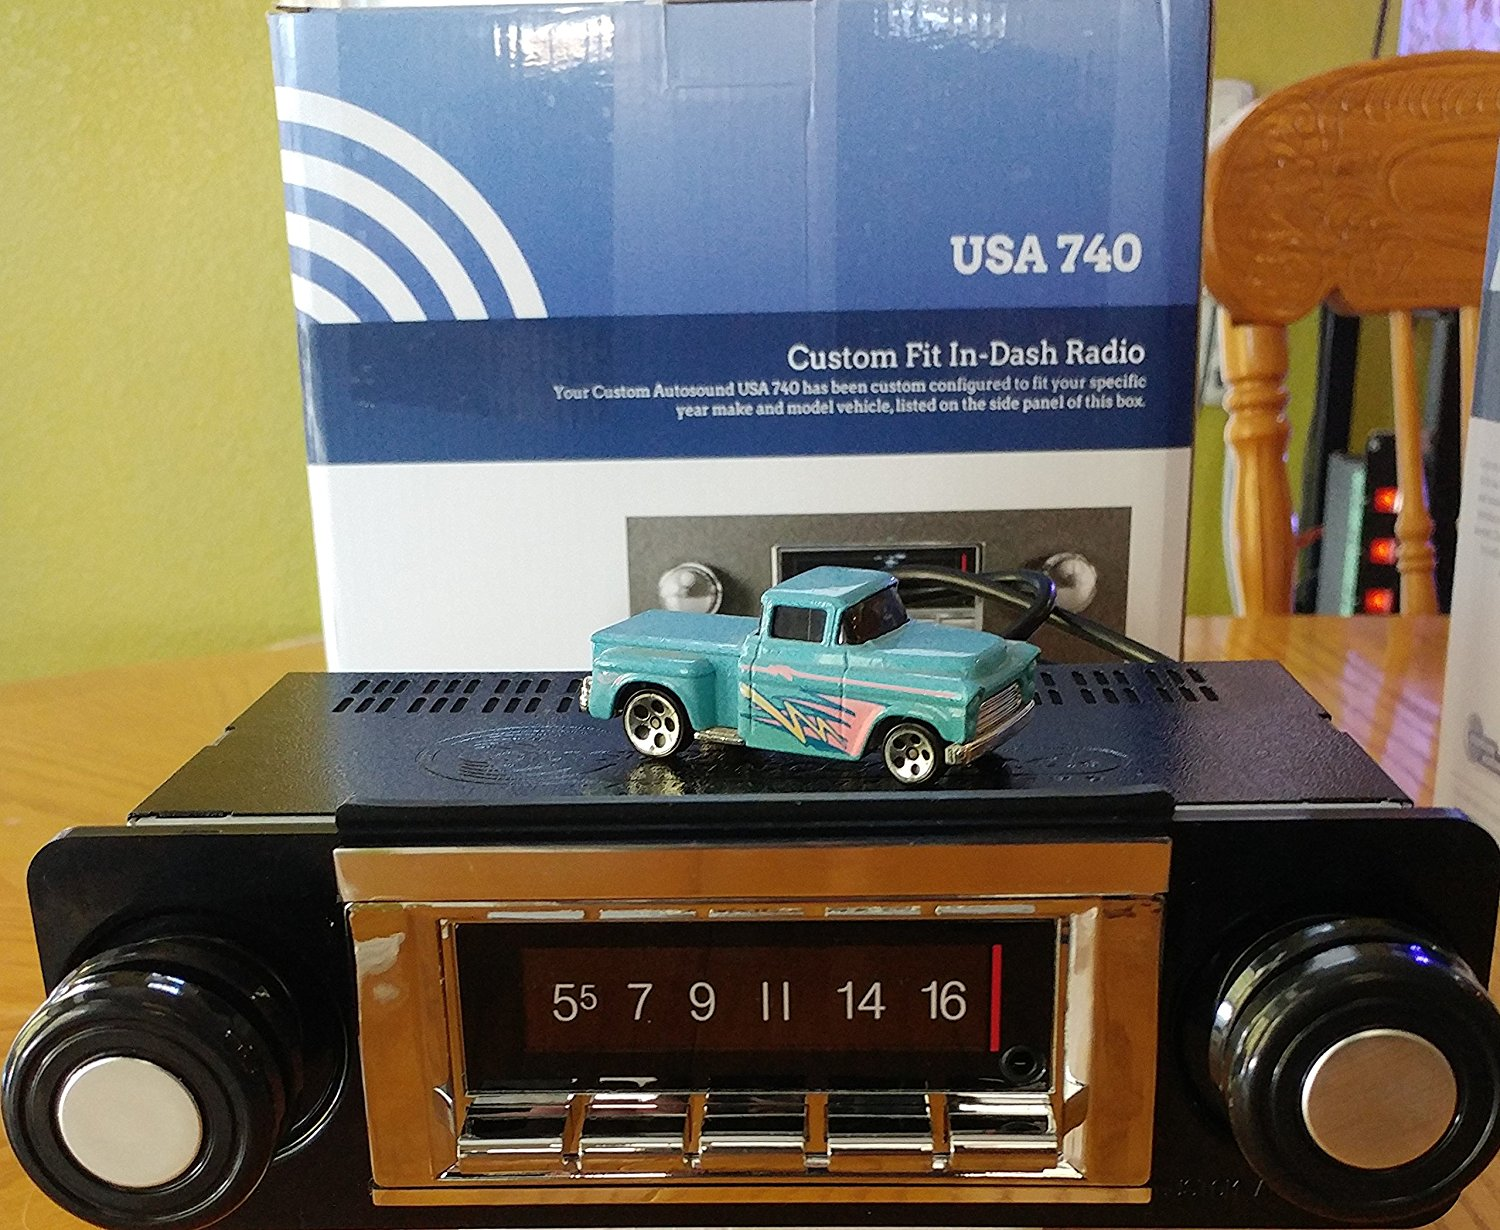 1967-1972 Chevrolet Truck 300 watt USA-740 AM FM Car Stereo/Radio with built-in Bluetooth, AUX Inputs, Color Change LCD Digital Display